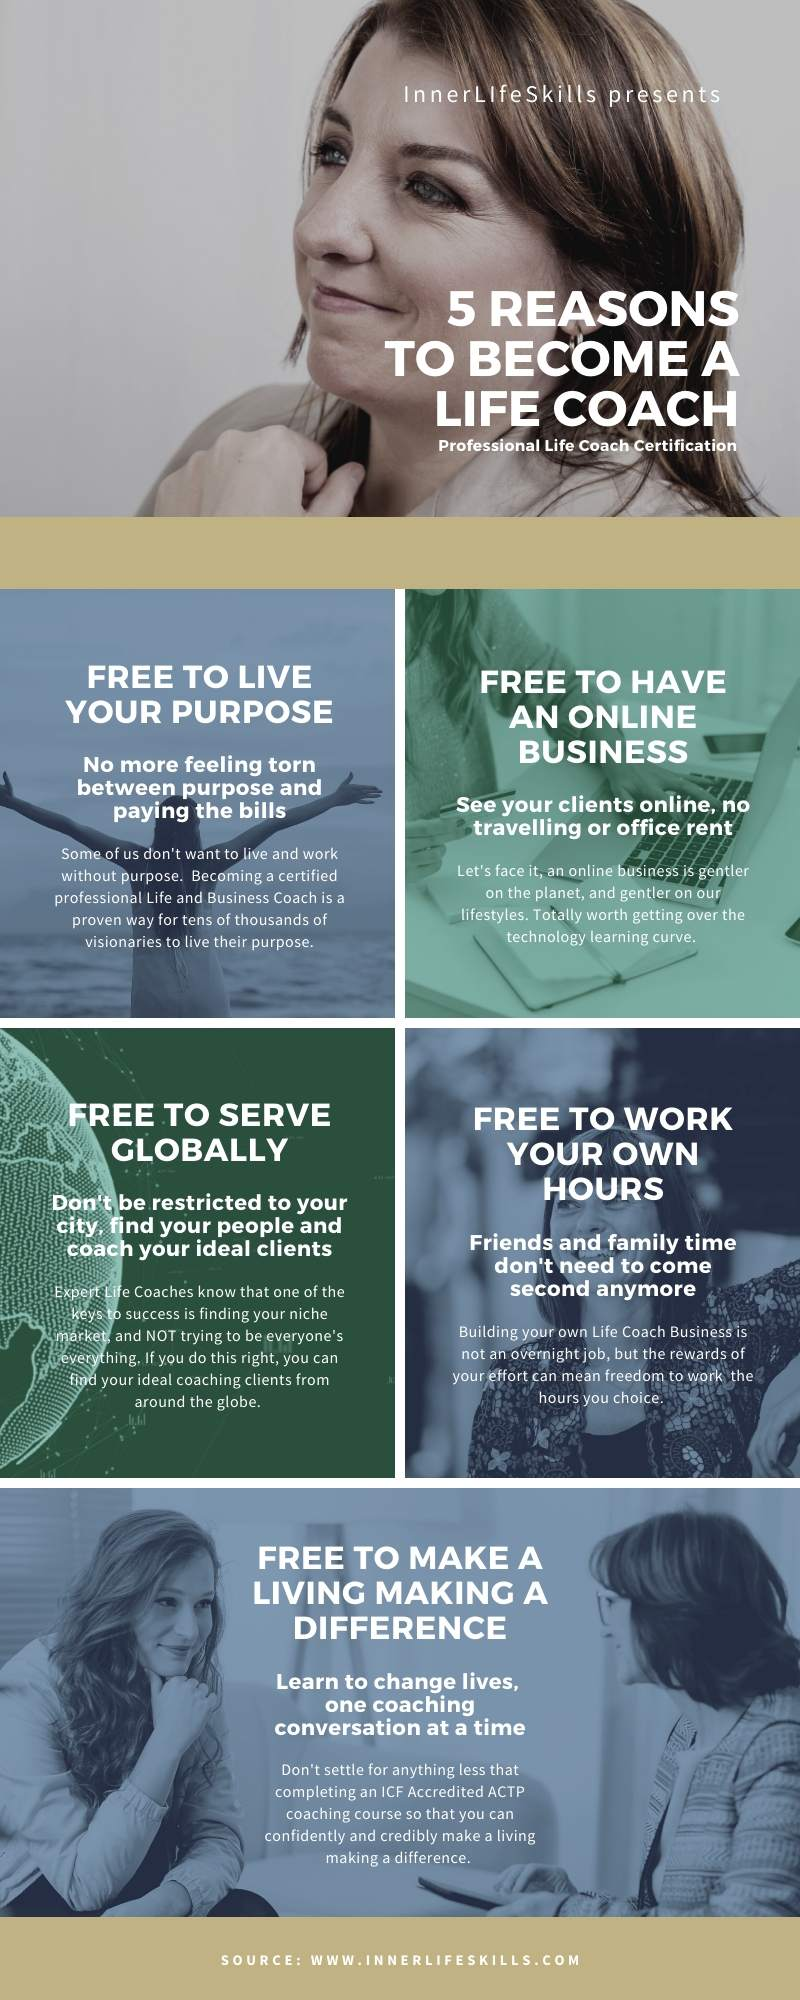 5 REASONS TO BECOME A LIFE COACH infographic